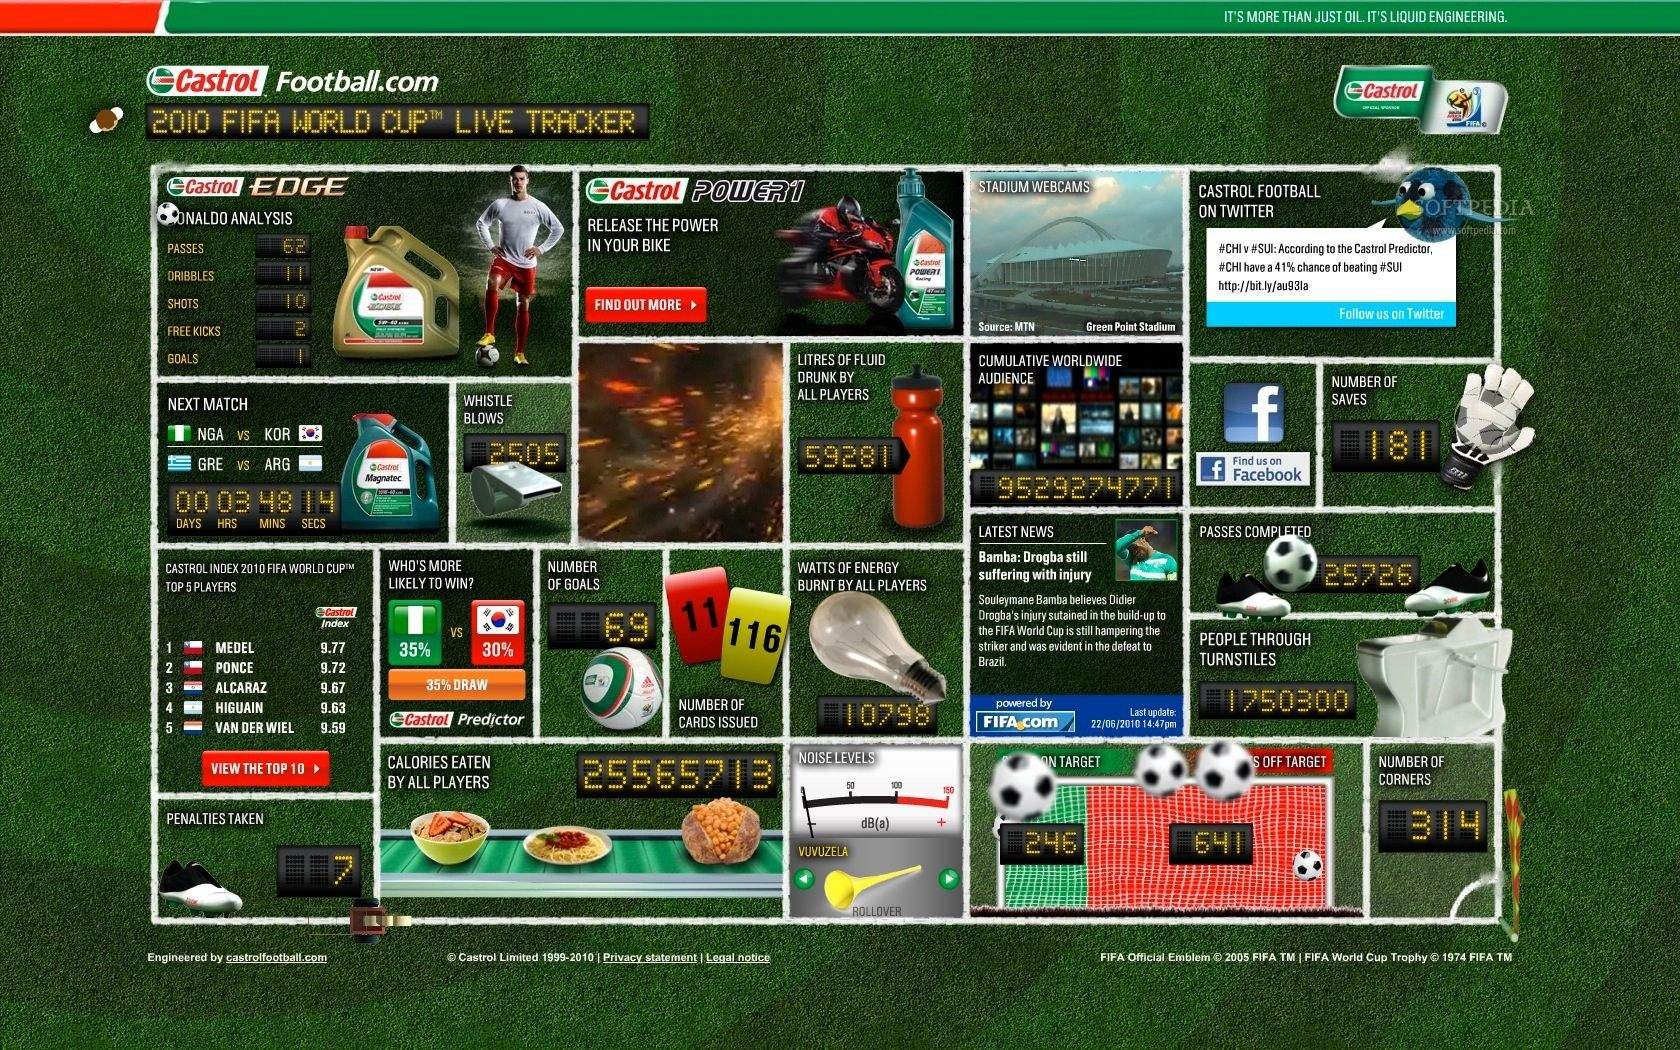 Castrol 2010 FIFA World Cup Live Tracker screenshot 1 - The ...